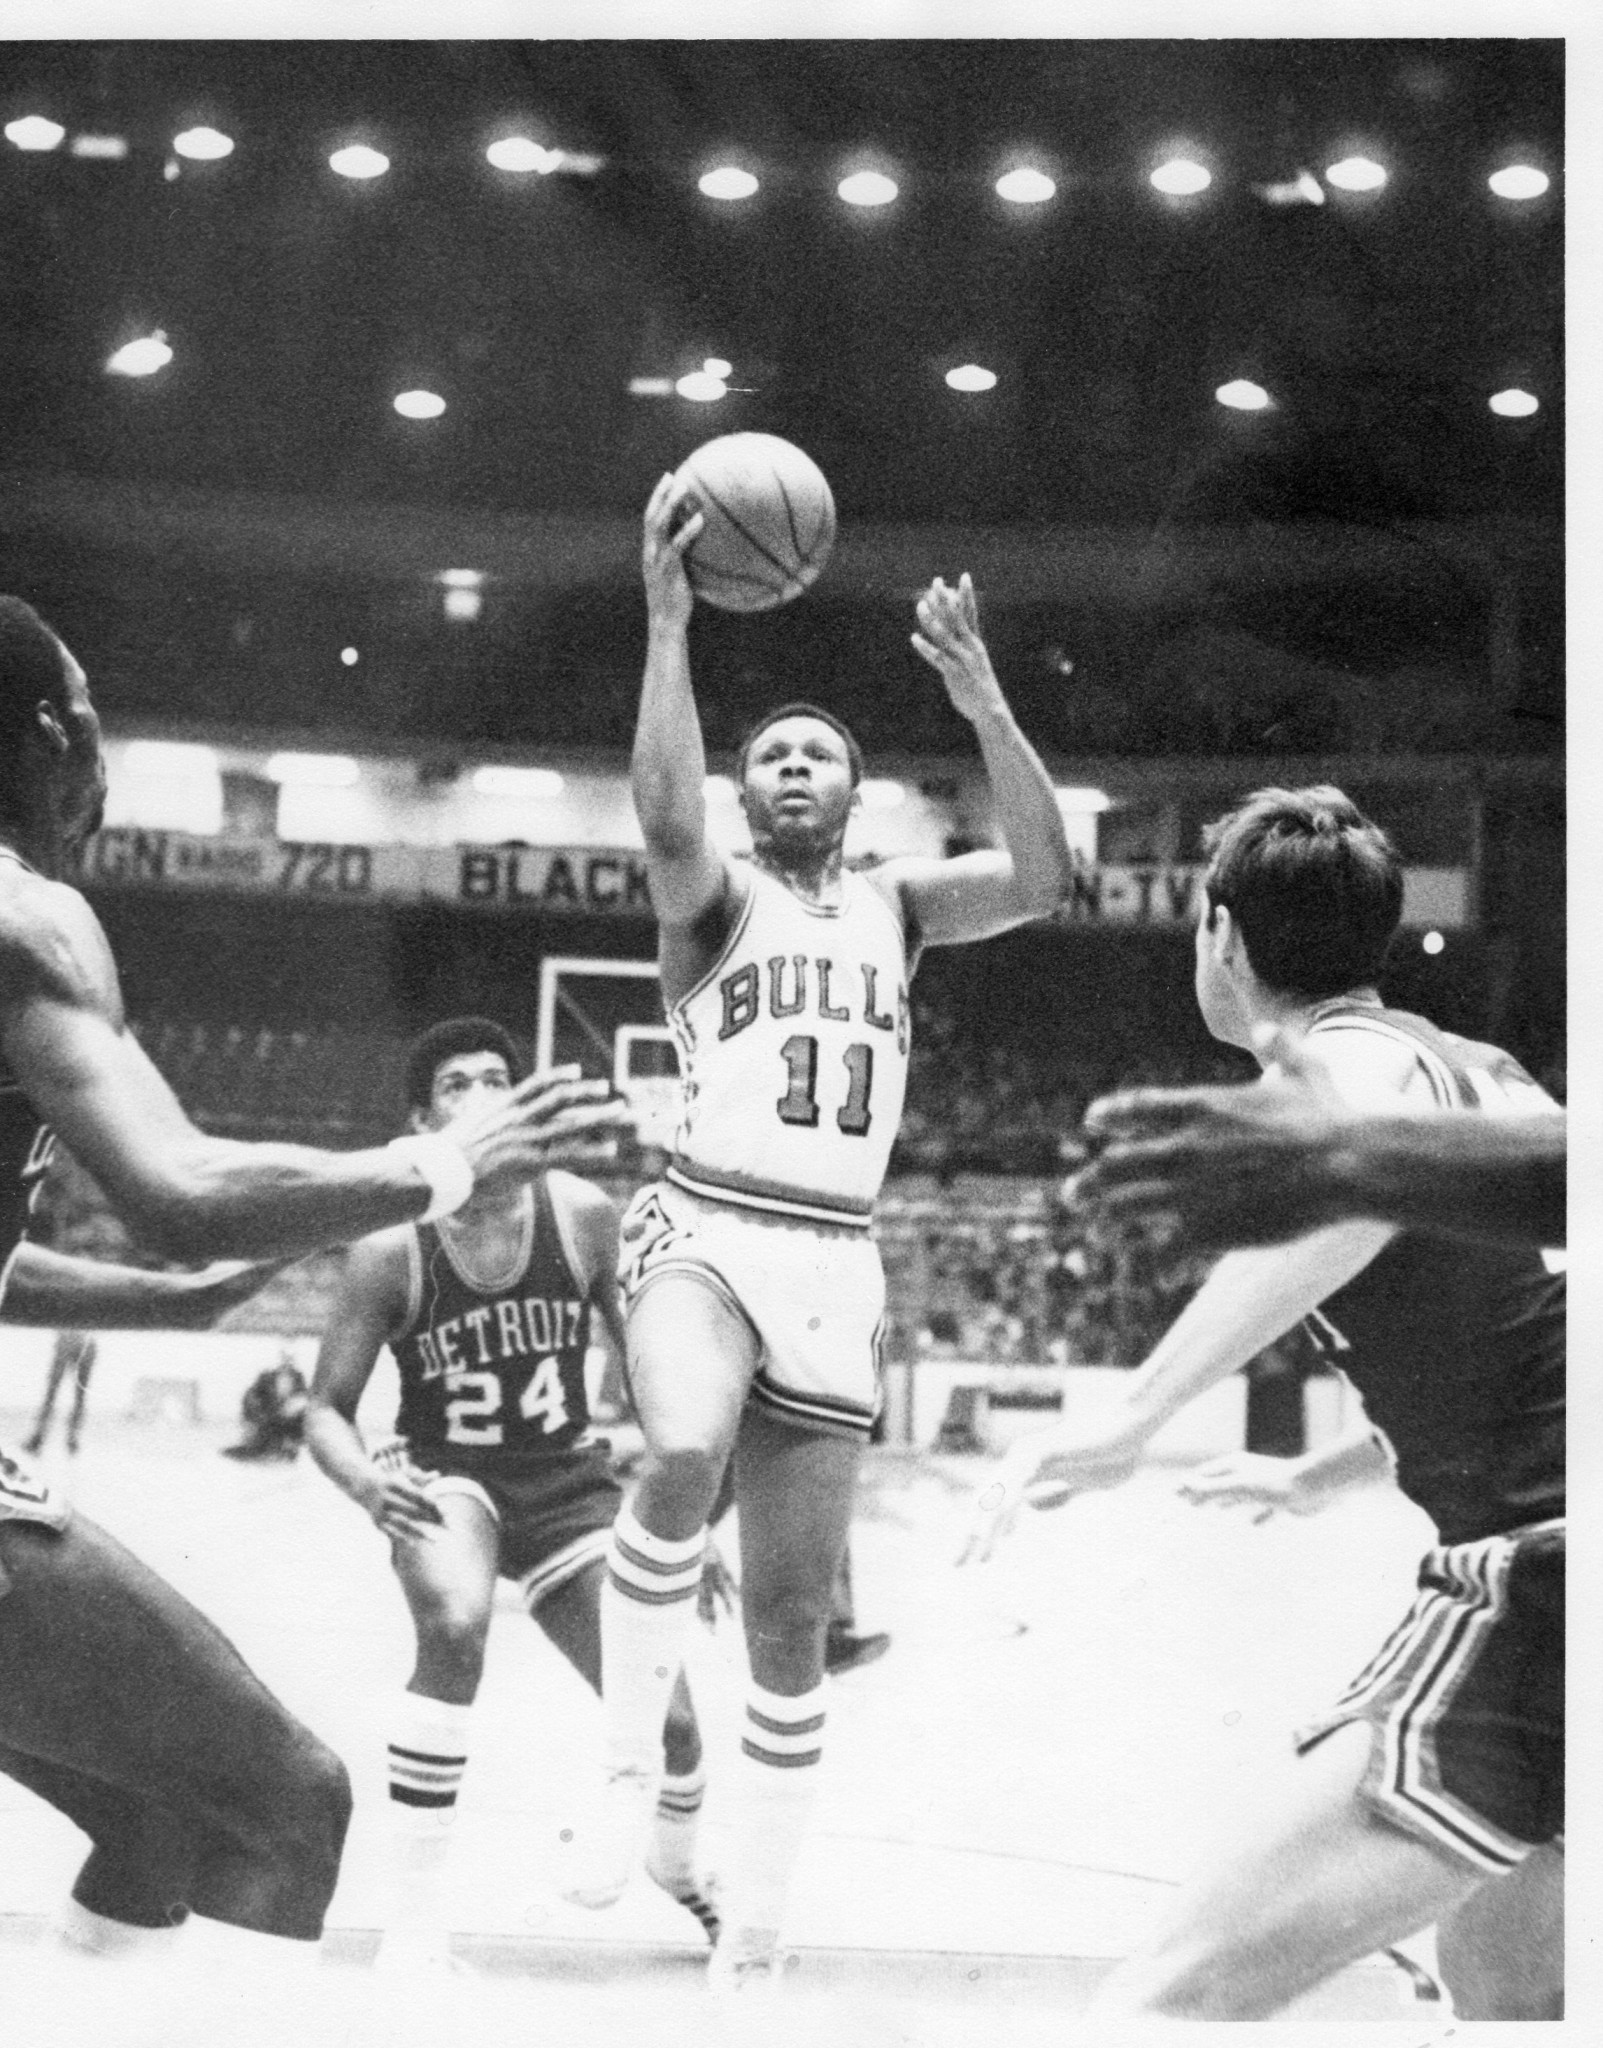 The 1960s and the Chicago Bulls – Chicago Bulls History